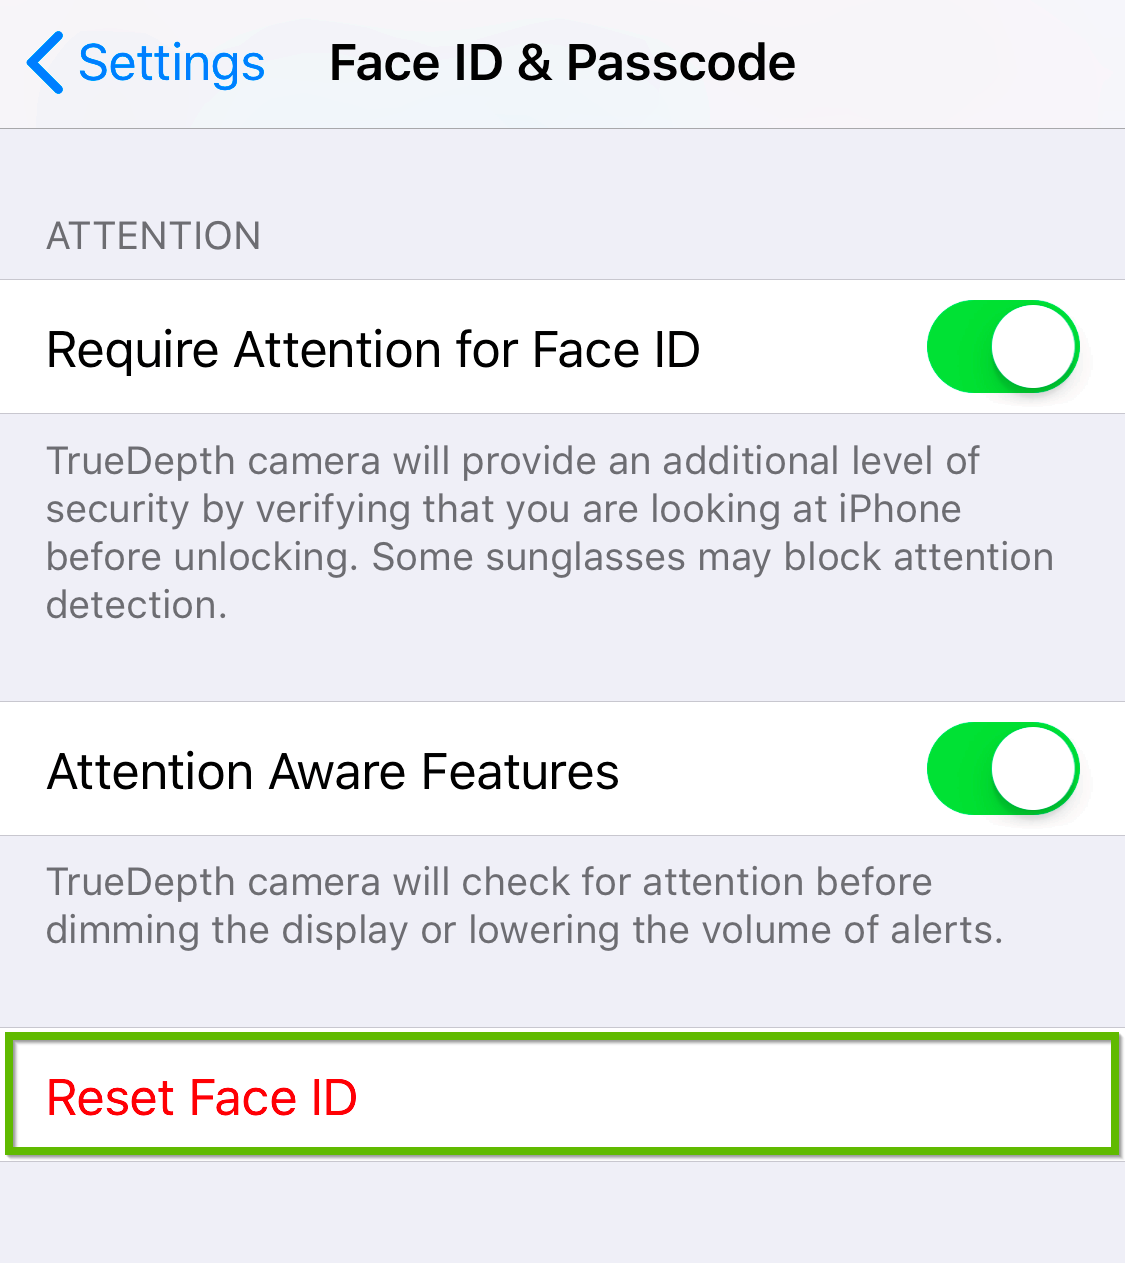 Face ID and passcode screen highlighting reset face ID.